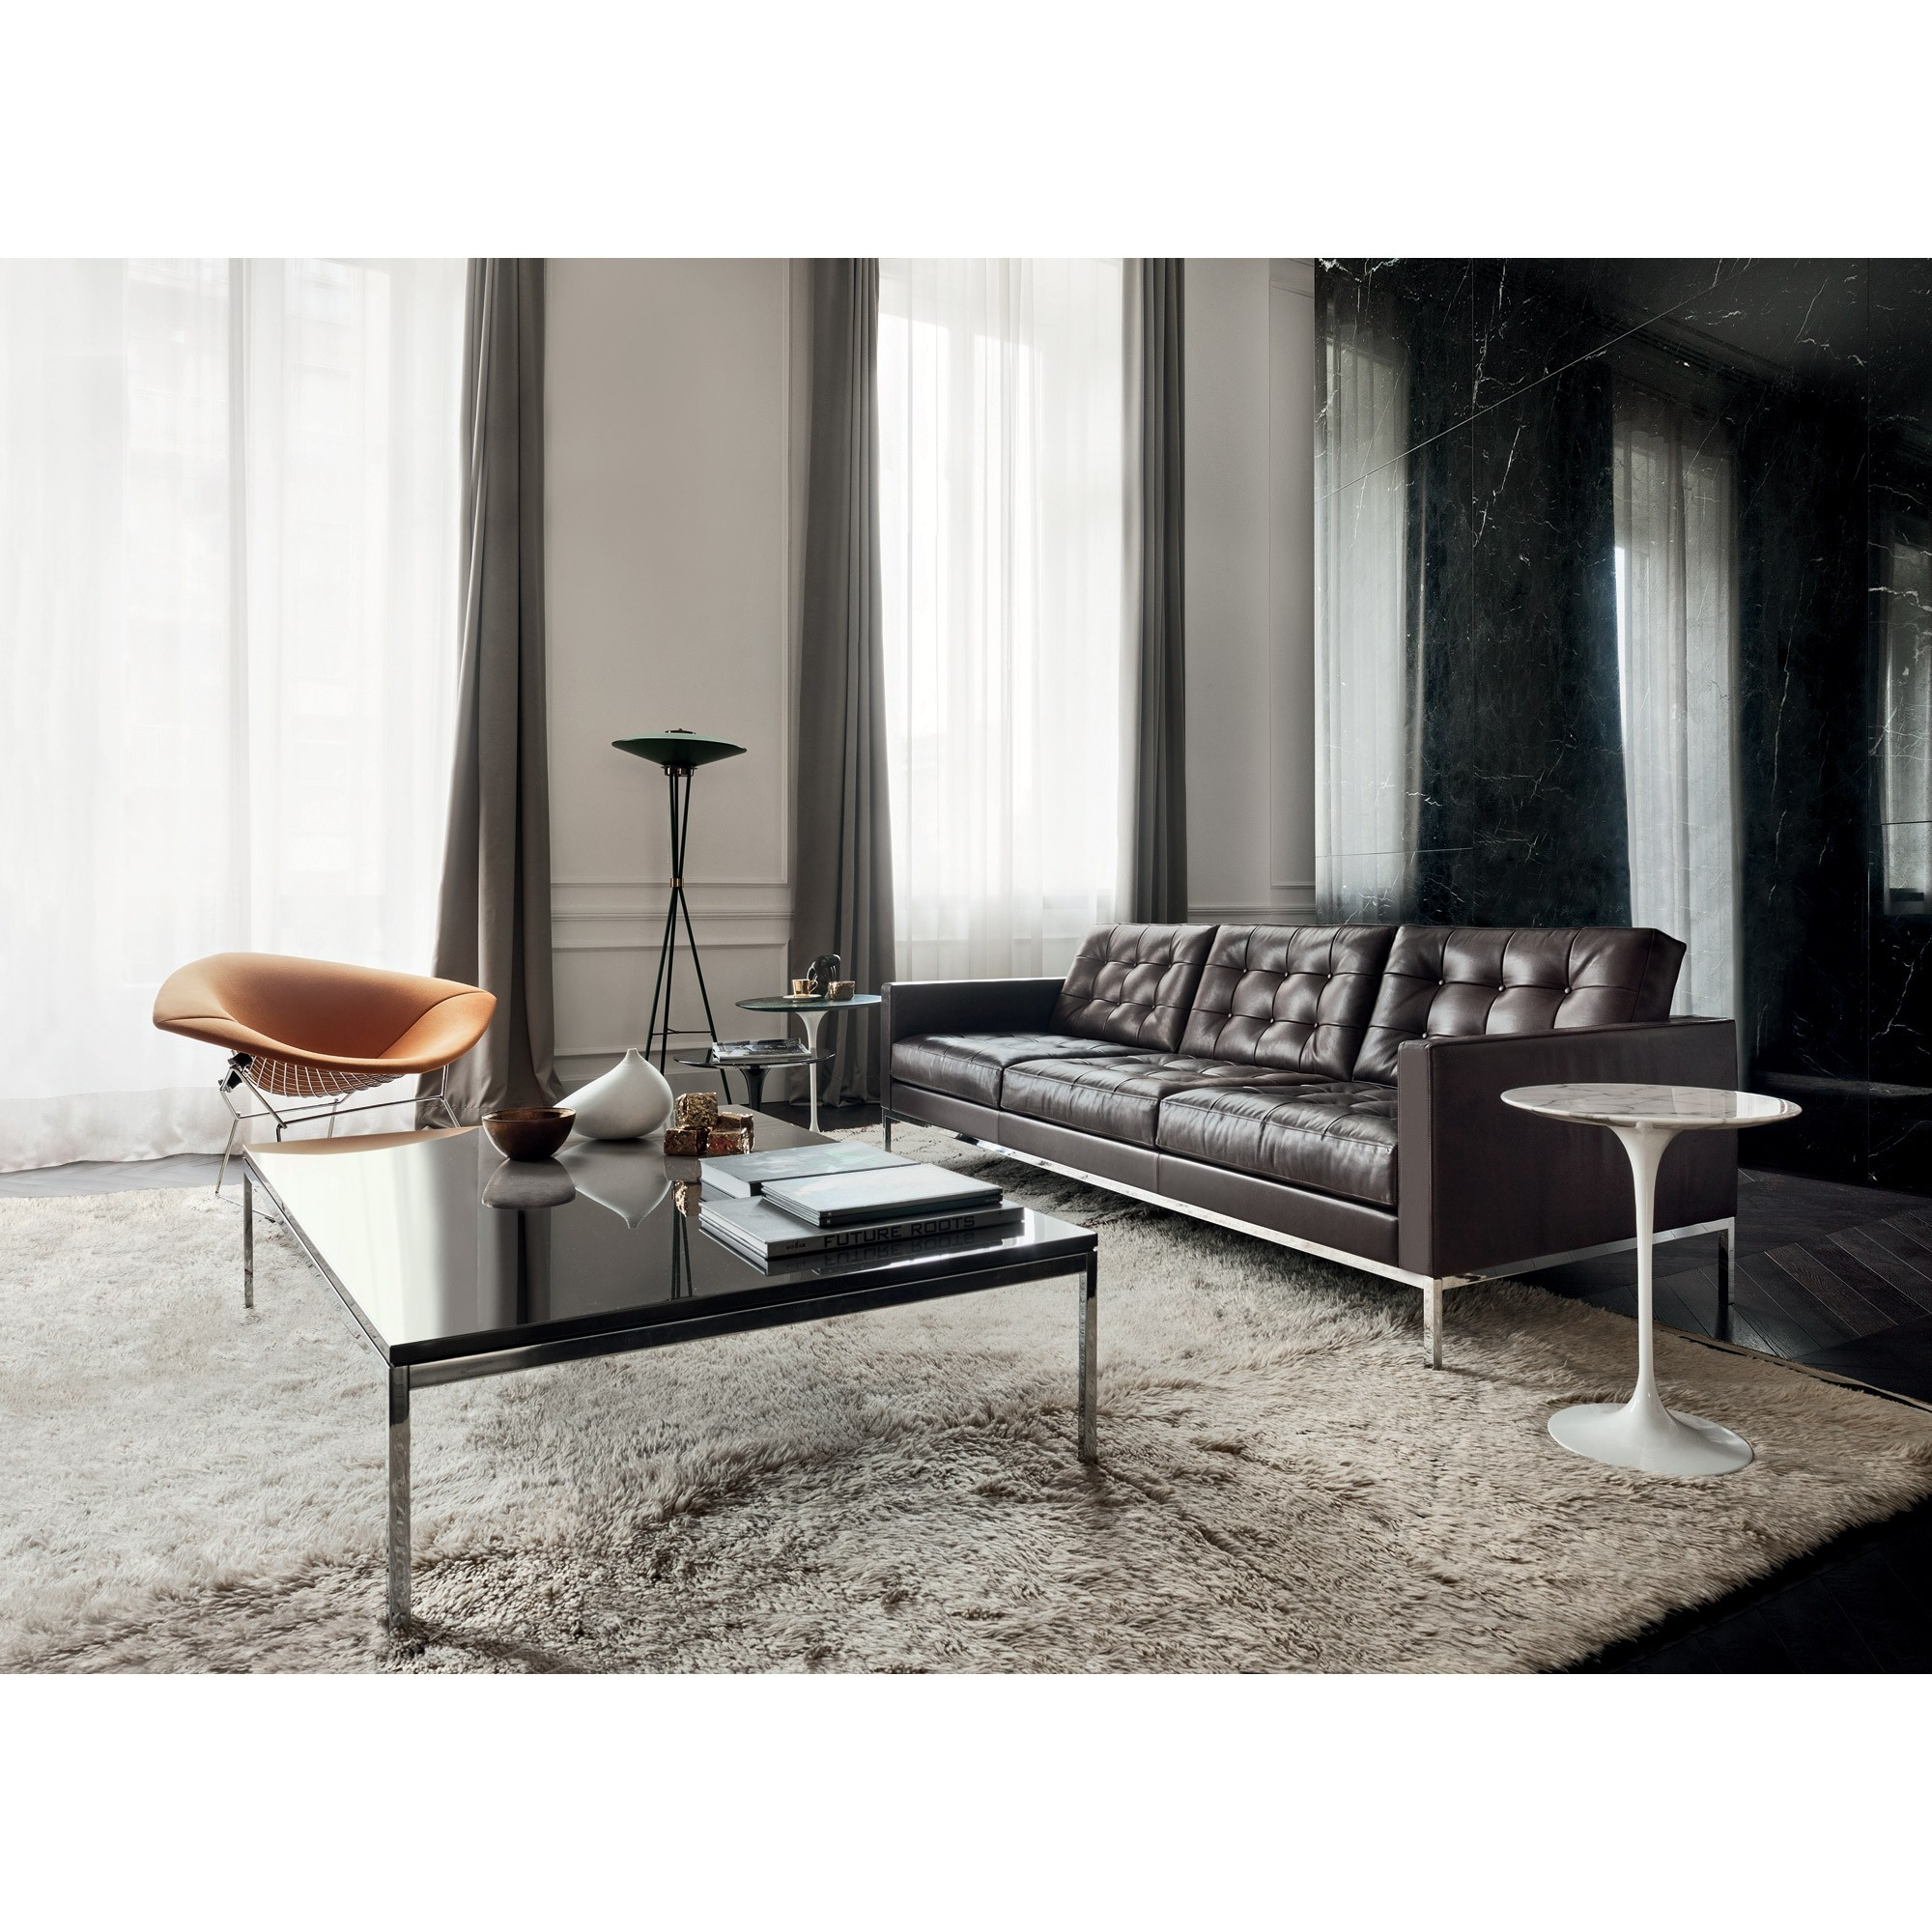 Natuzzi Editions Florence Leather Sofa Reviews Rs Gold Sofa Within Florence Knoll Leather Sofas (Photo 7 of 15)